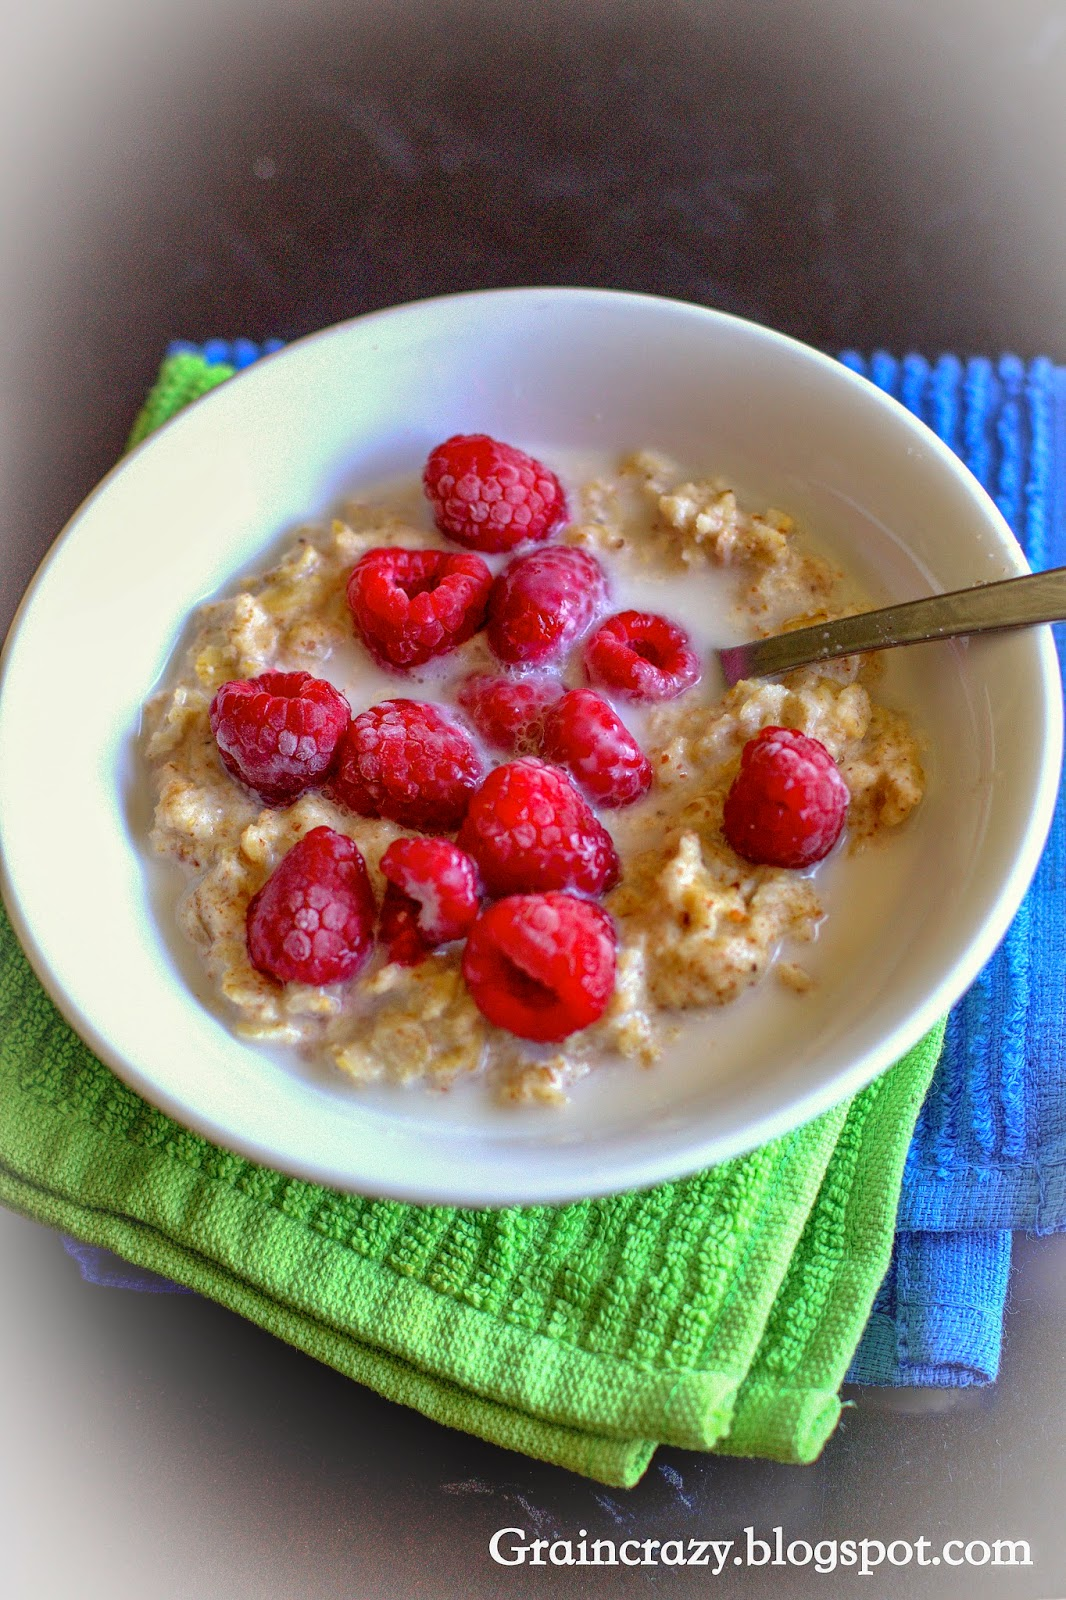 Grain Crazy: Toasted Oatmeal and Almond Butter